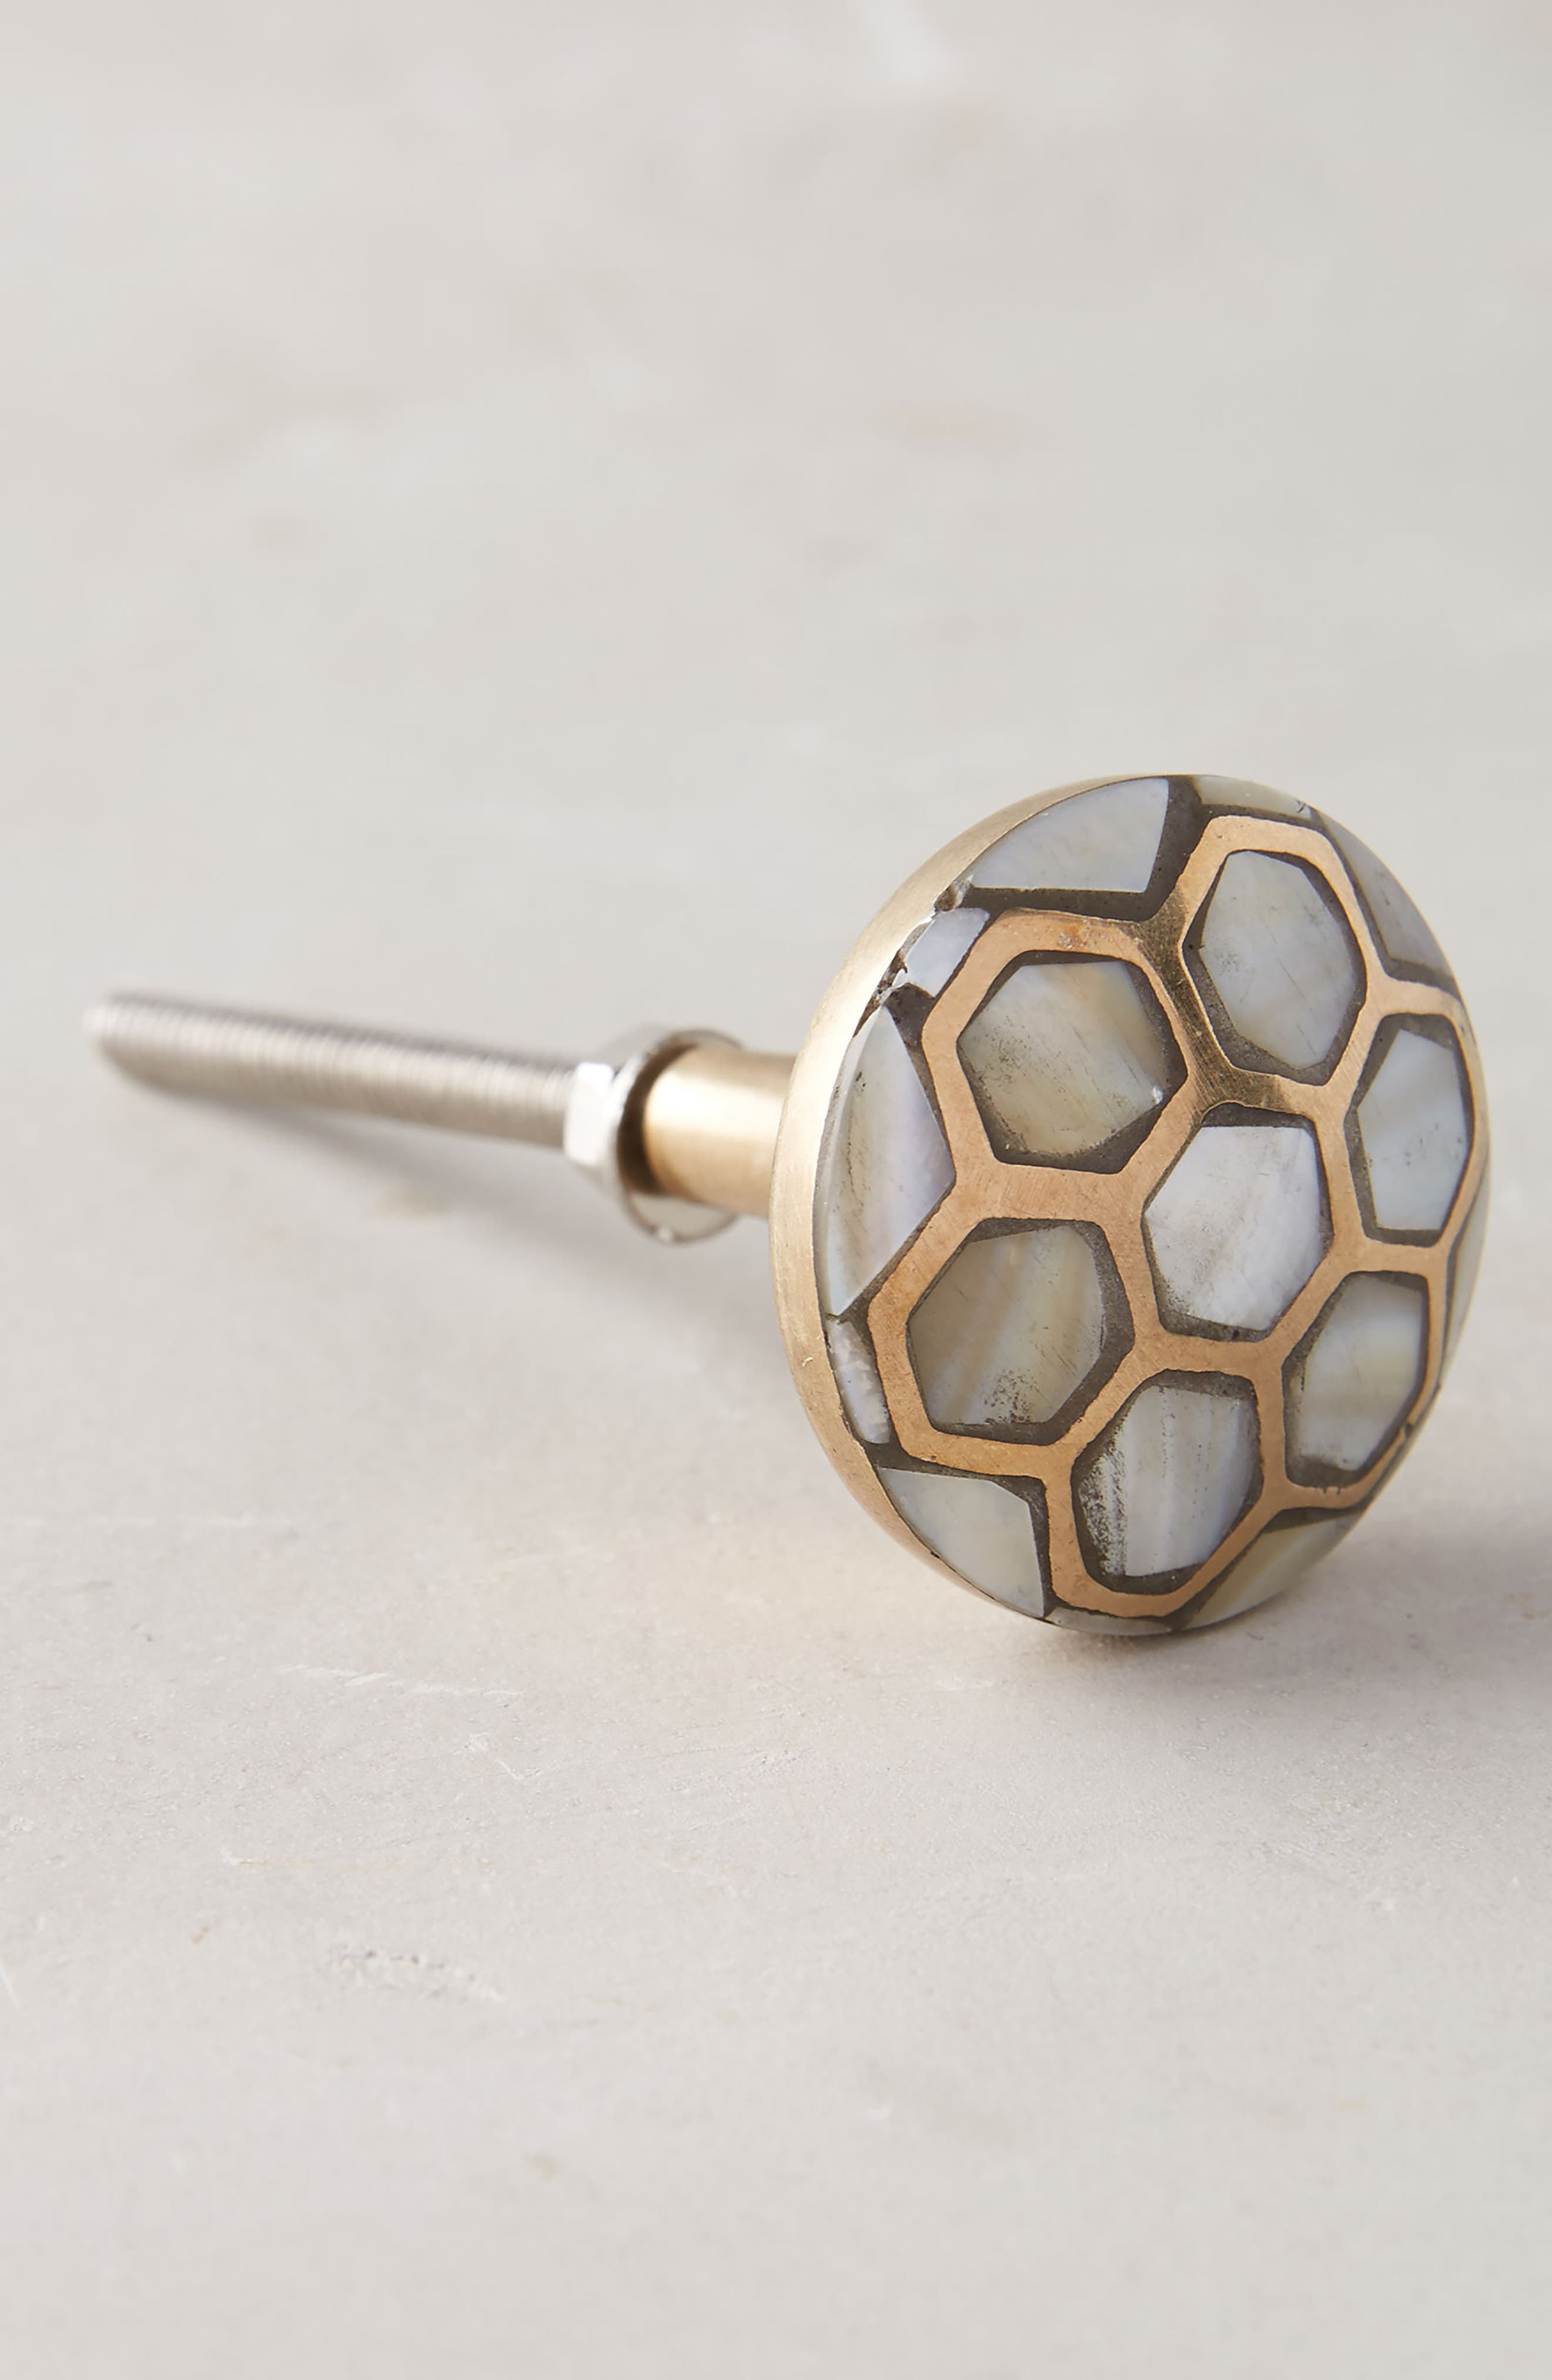 Serpentine Mother of Pearl Knob,                             Alternate thumbnail 2, color,                             250